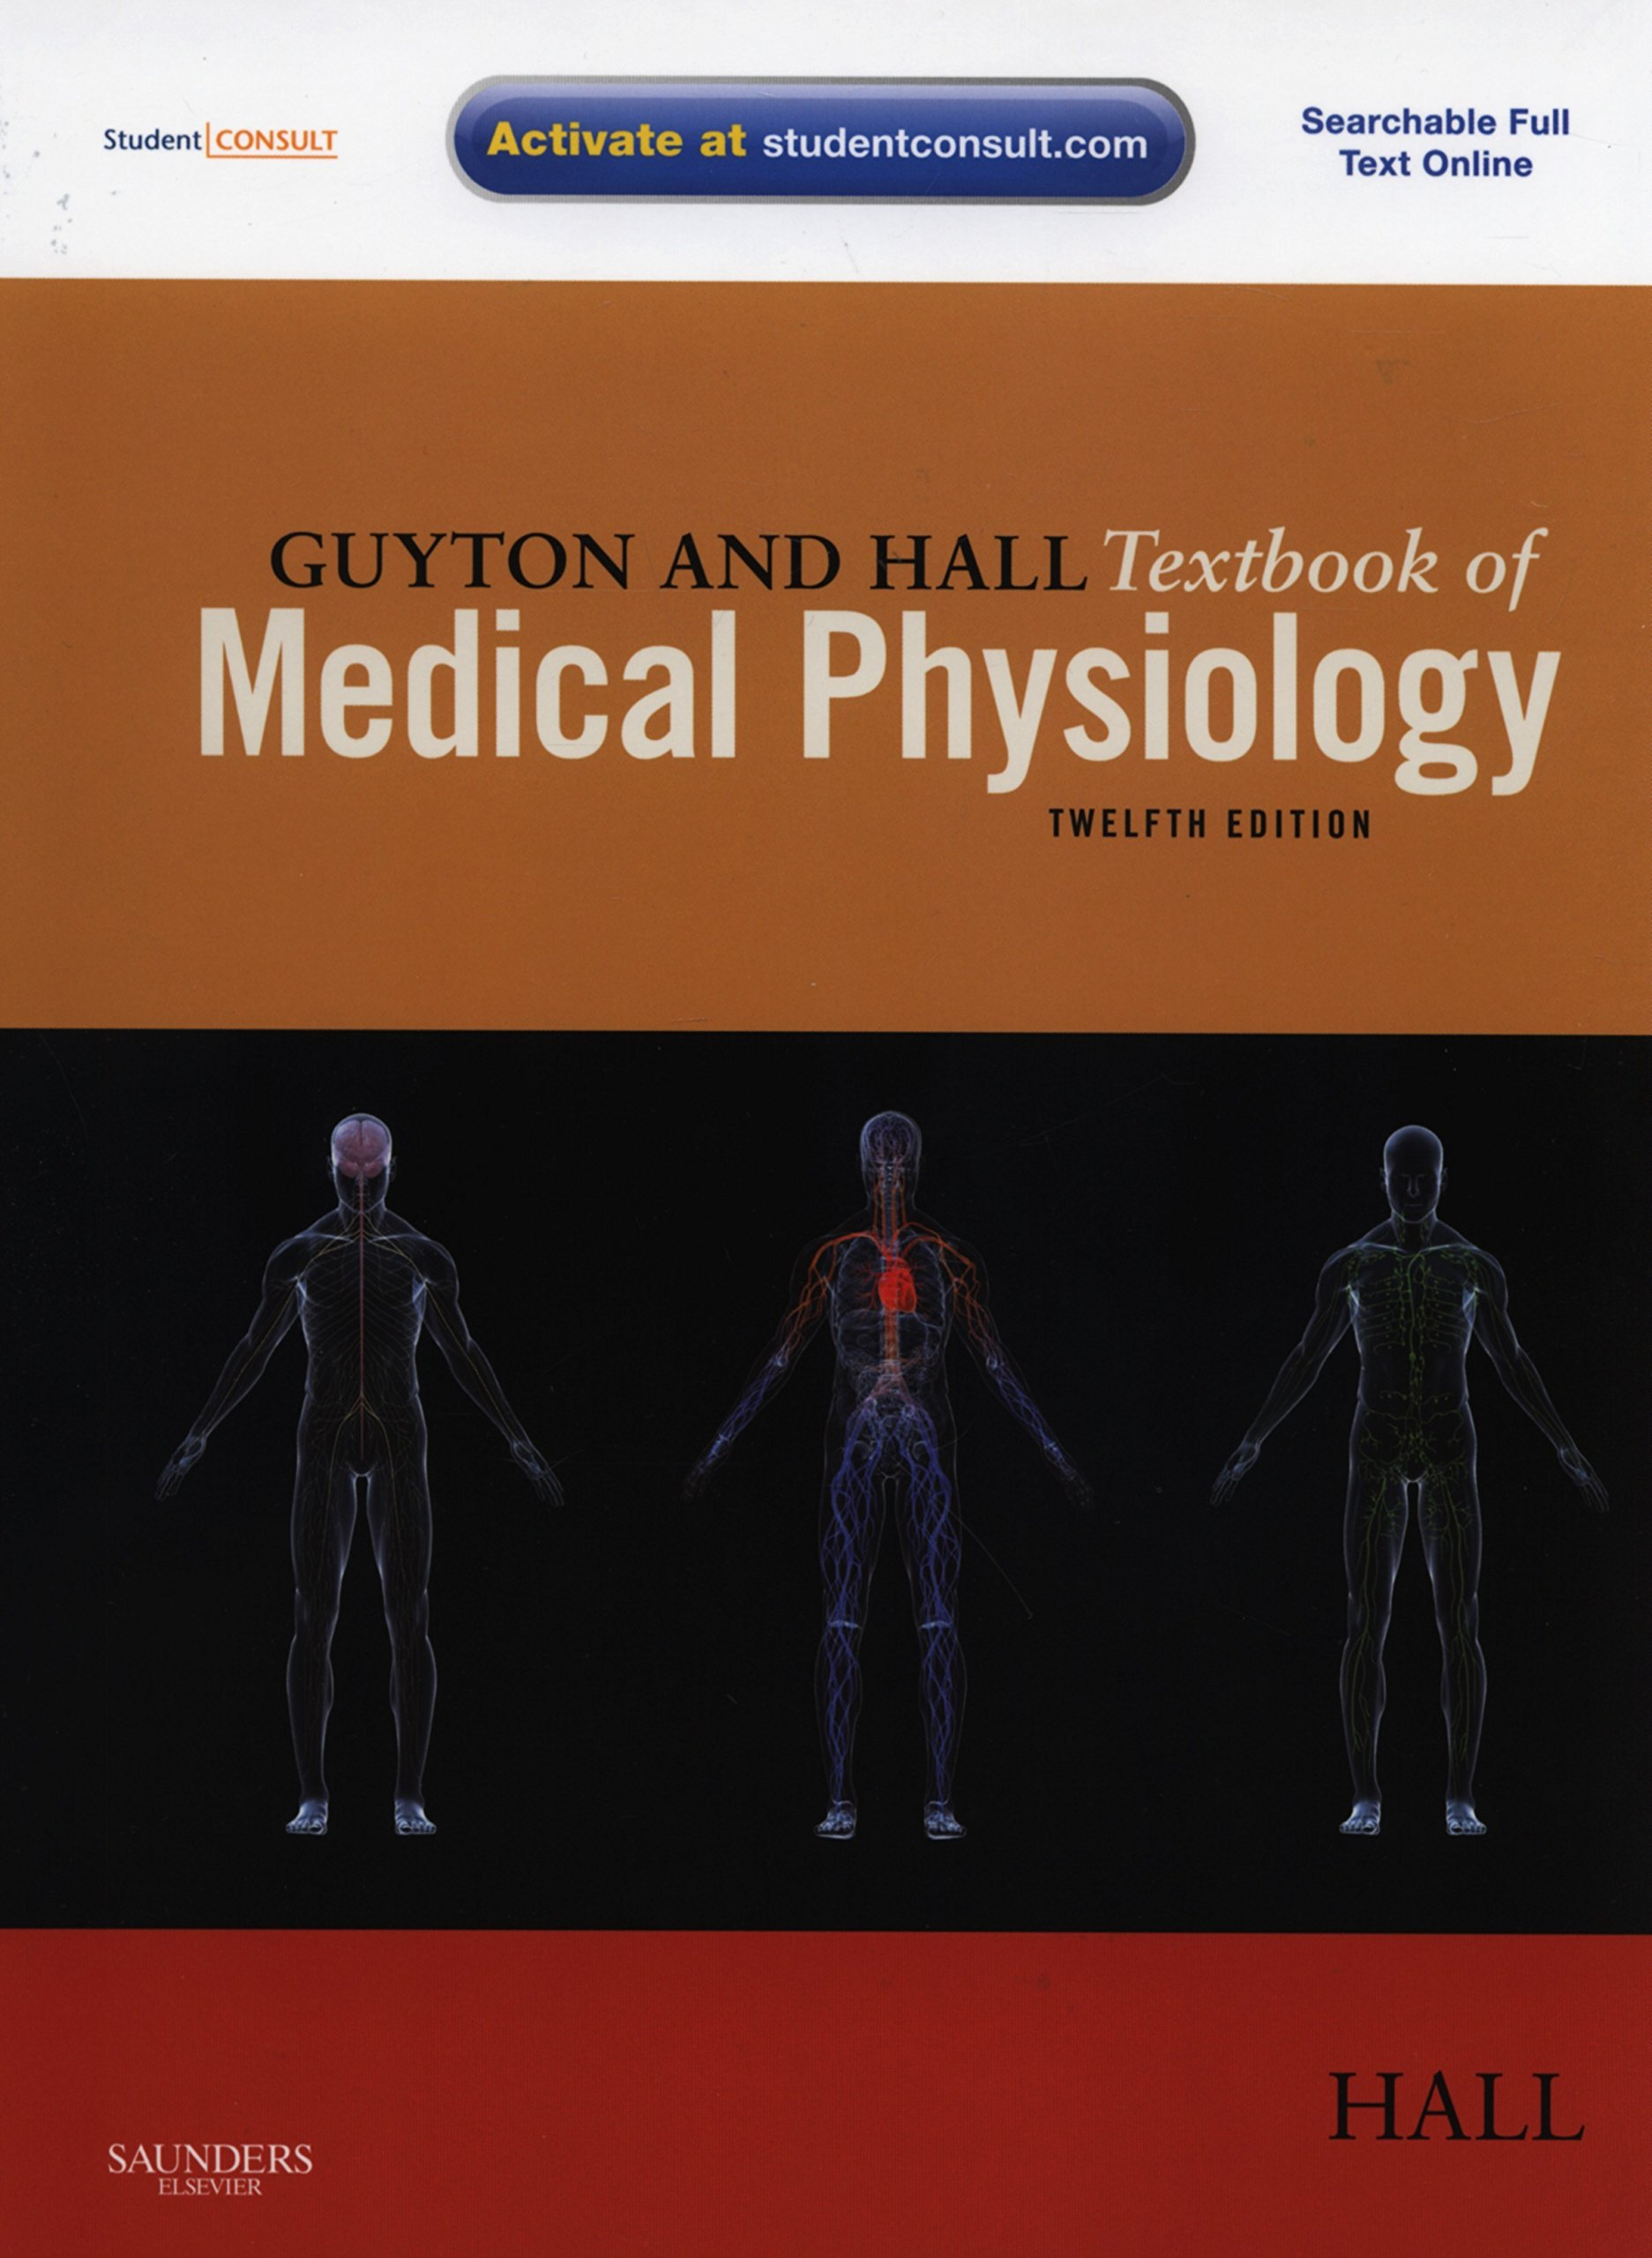 Guyton And Hall Textbook Of Medical Physiology With Student Consult